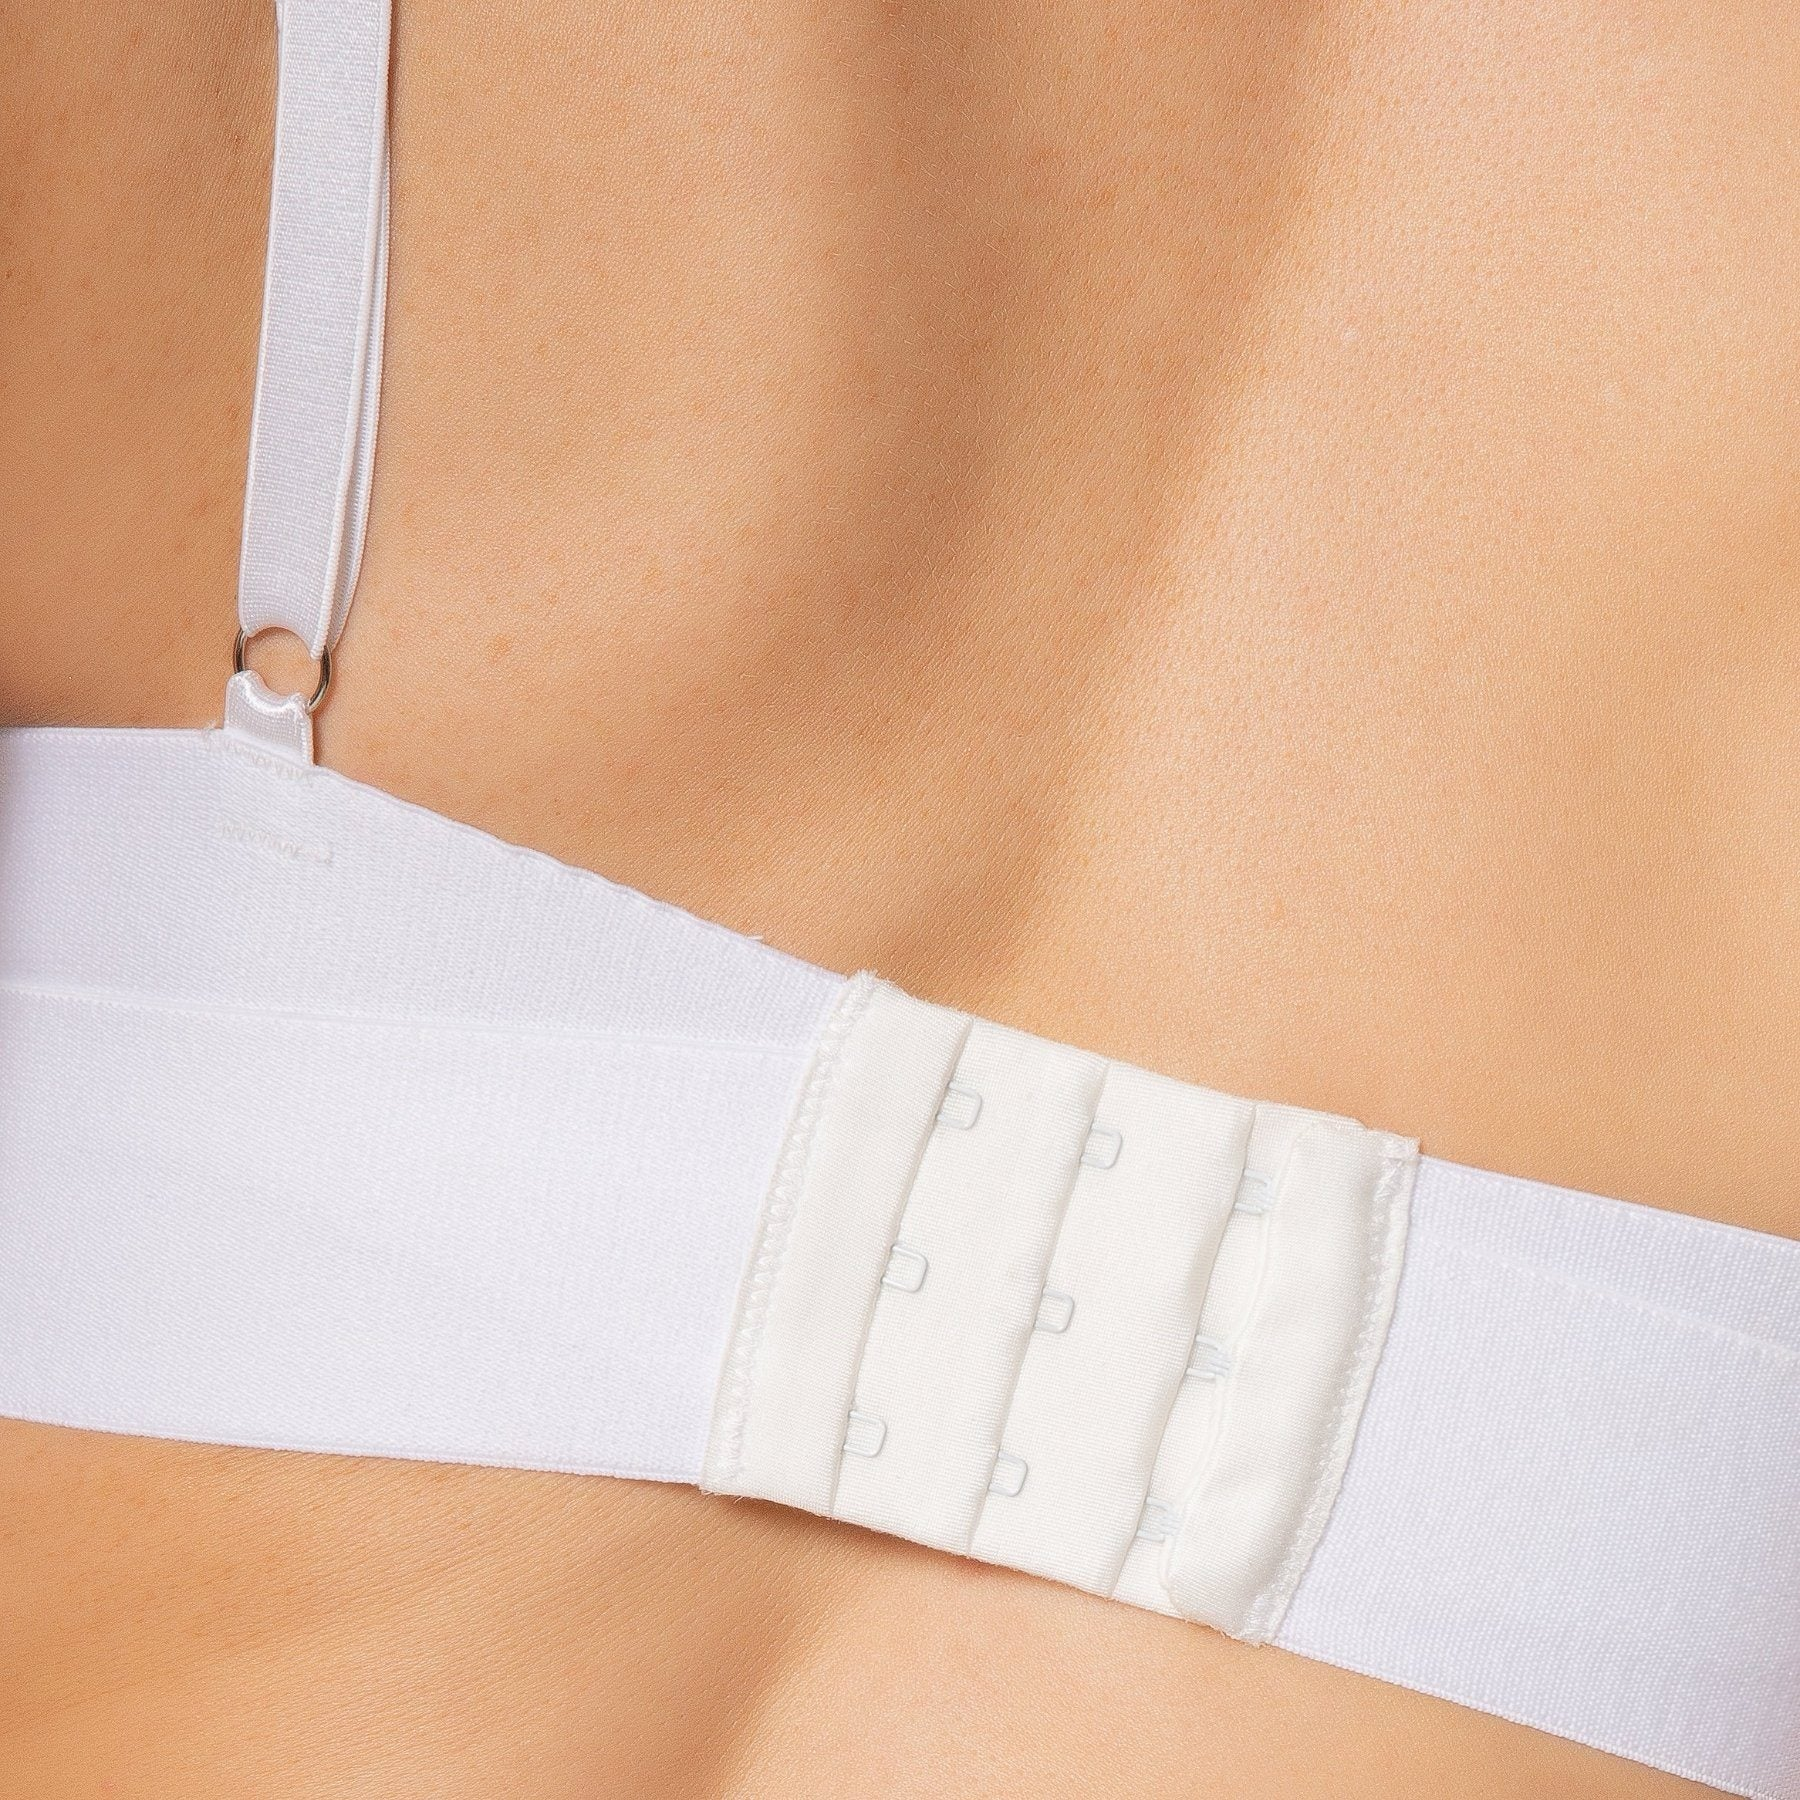 closeup of white bra strap and clasp